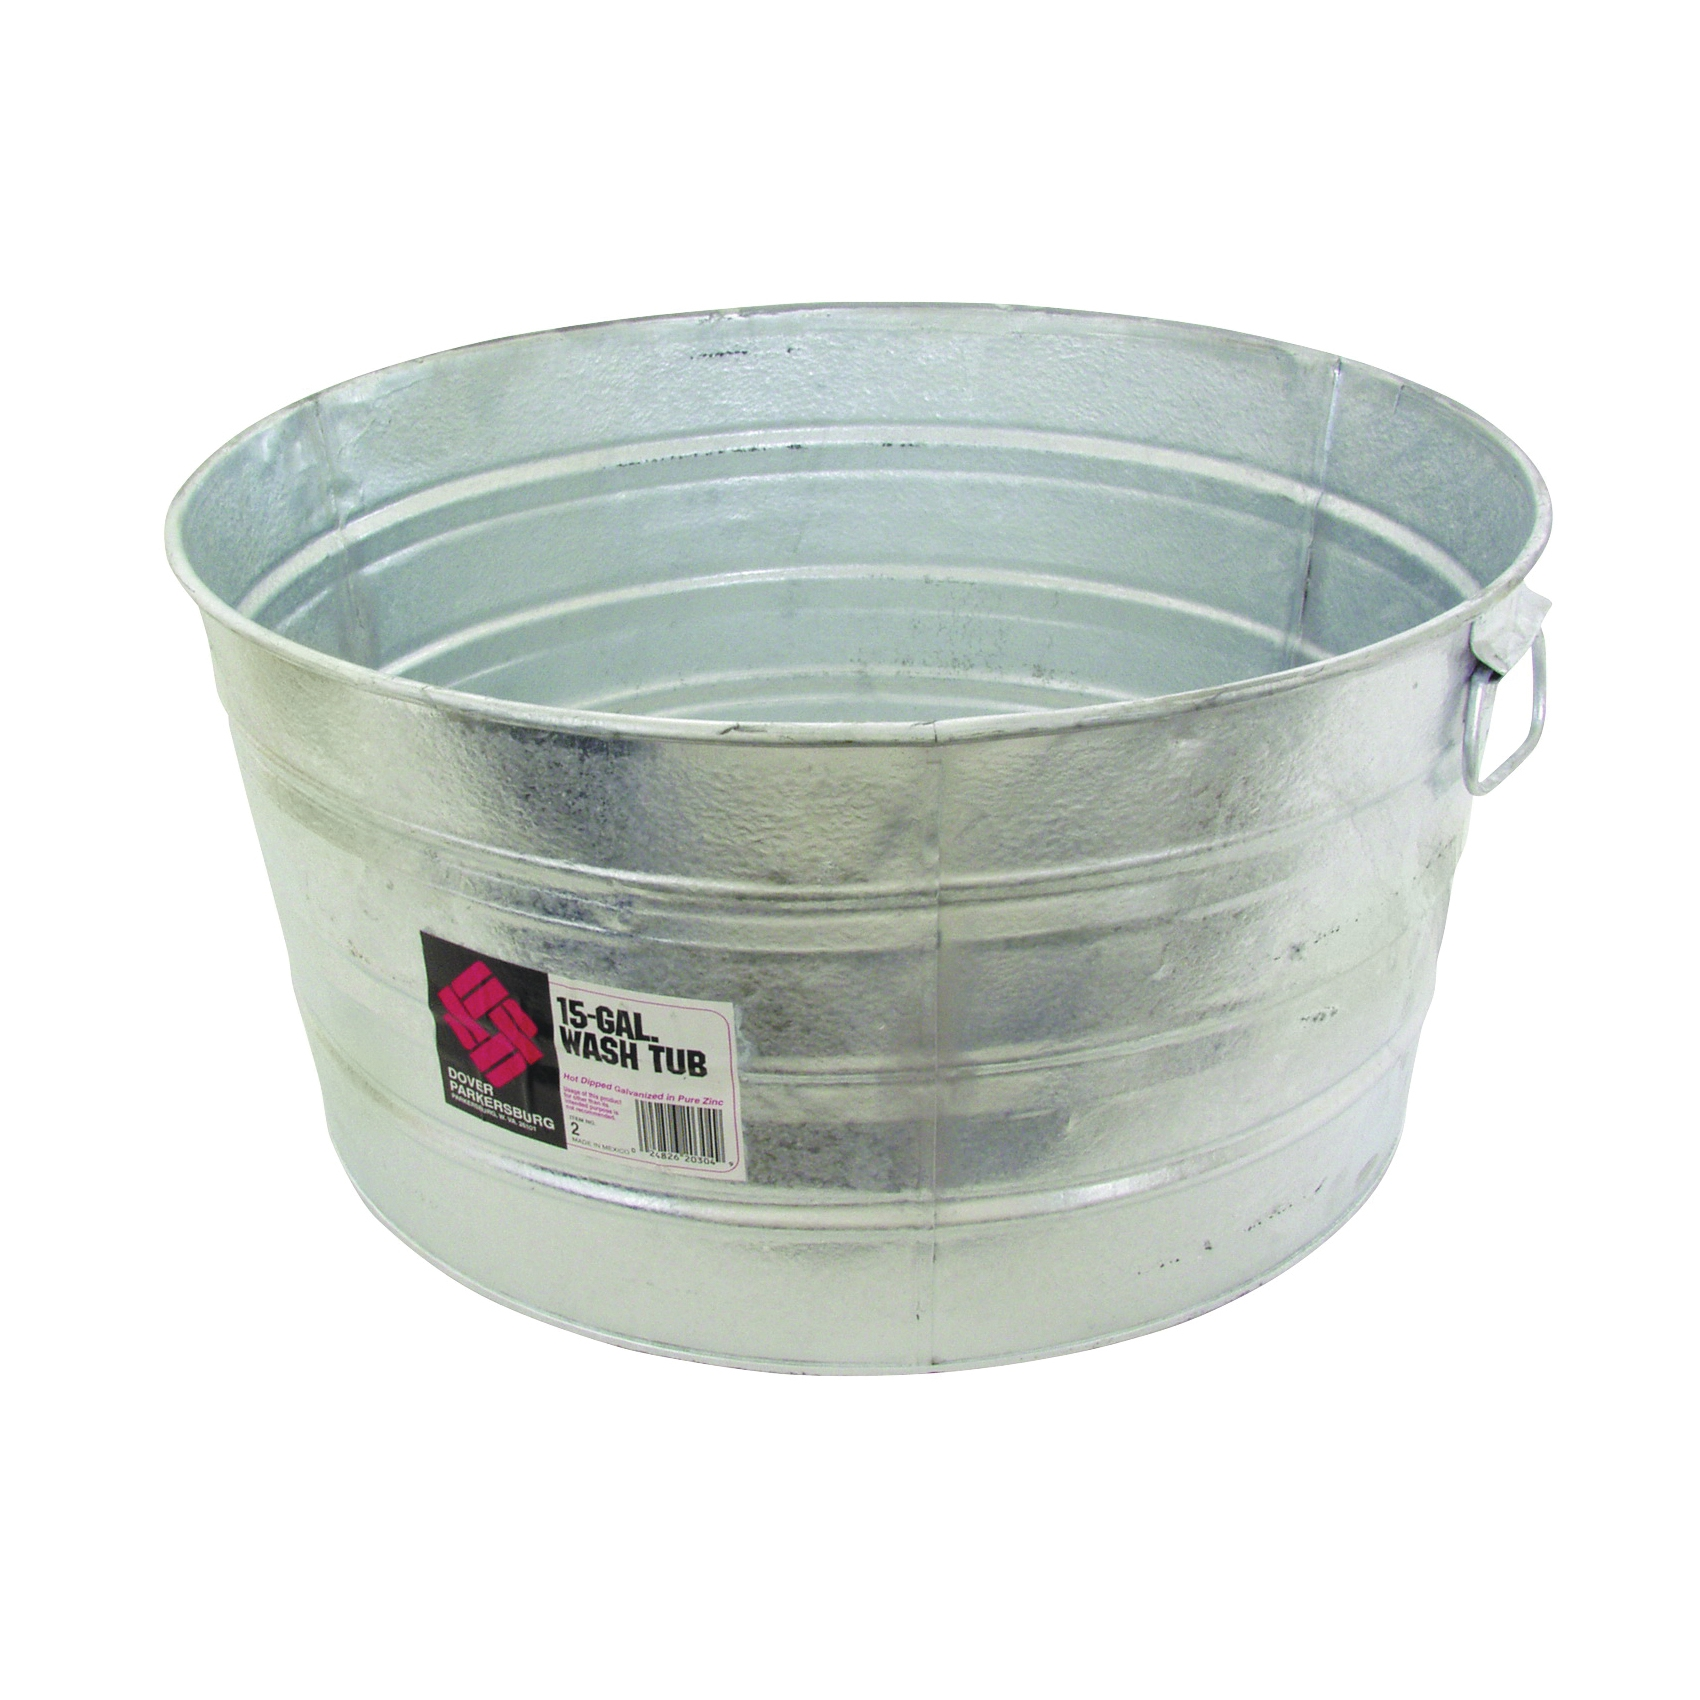 Picture of Behrens 2 Wash Tub, 15 gal Capacity, Steel